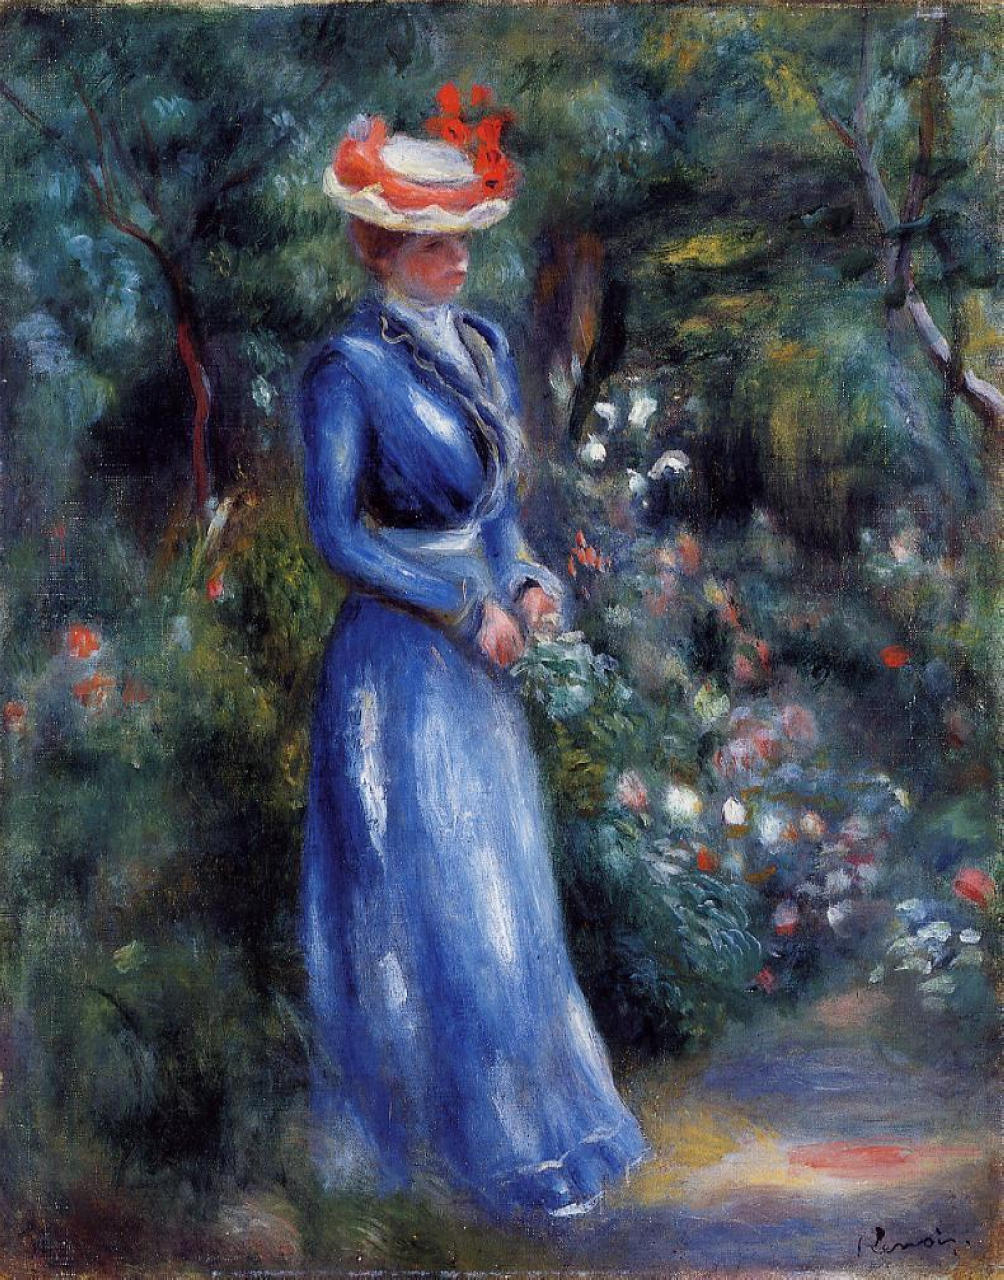 Cuadro Canvas Woman In A Blue Dress, Standing In The Garden Of Saint